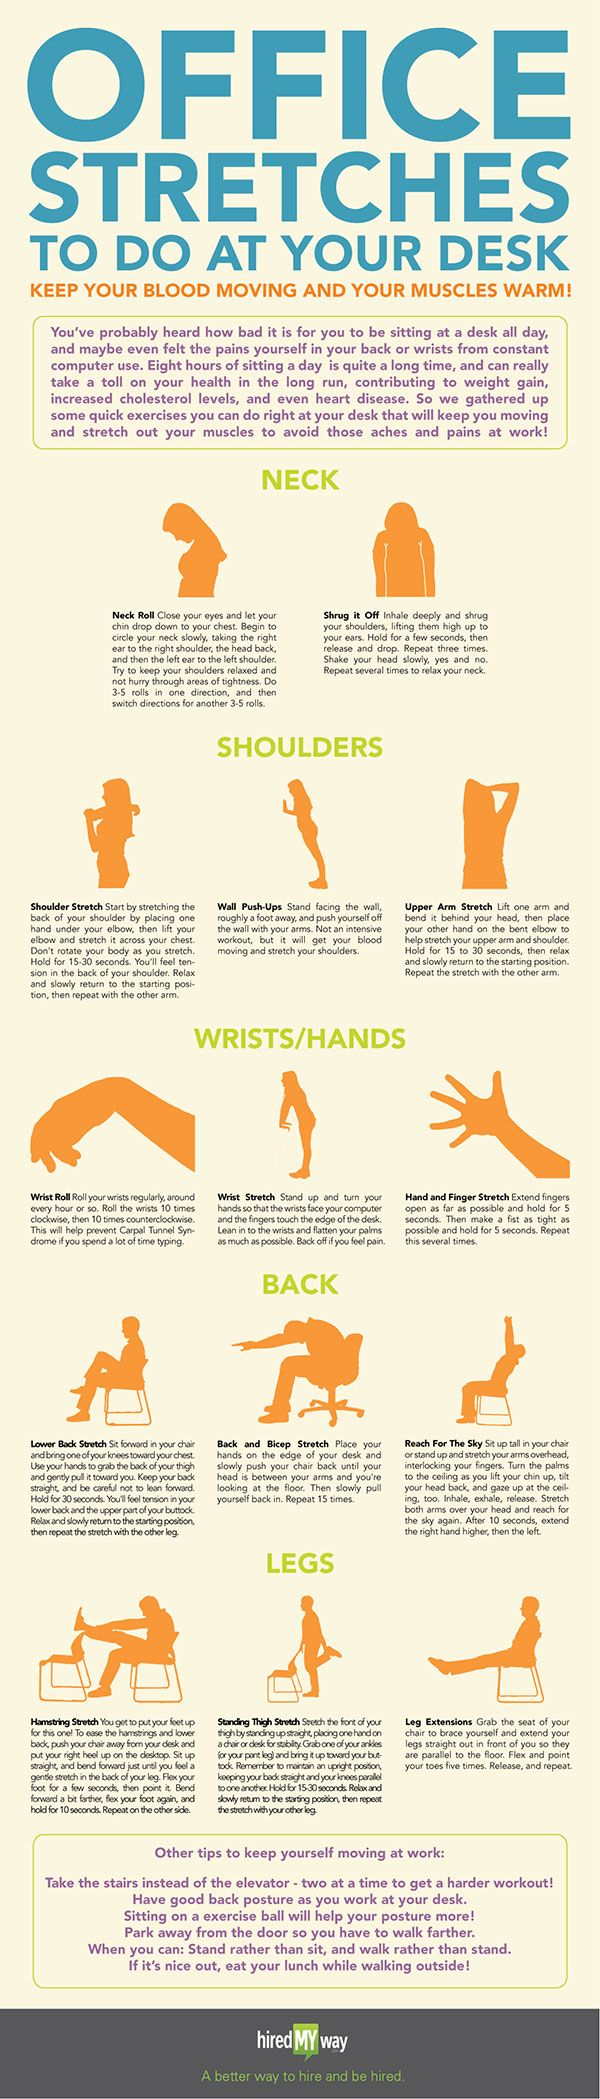 Office Stretches To Do At Your Desk {infographic}  Best. Different Desks. Plastic Desk Cover. Desk Carrel. Queen Bed With Drawers Underneath Ikea. It Help Desk Specialist Job Description. 42 Inch Round Table Top. Office Workstation Desk. Manicure Desk